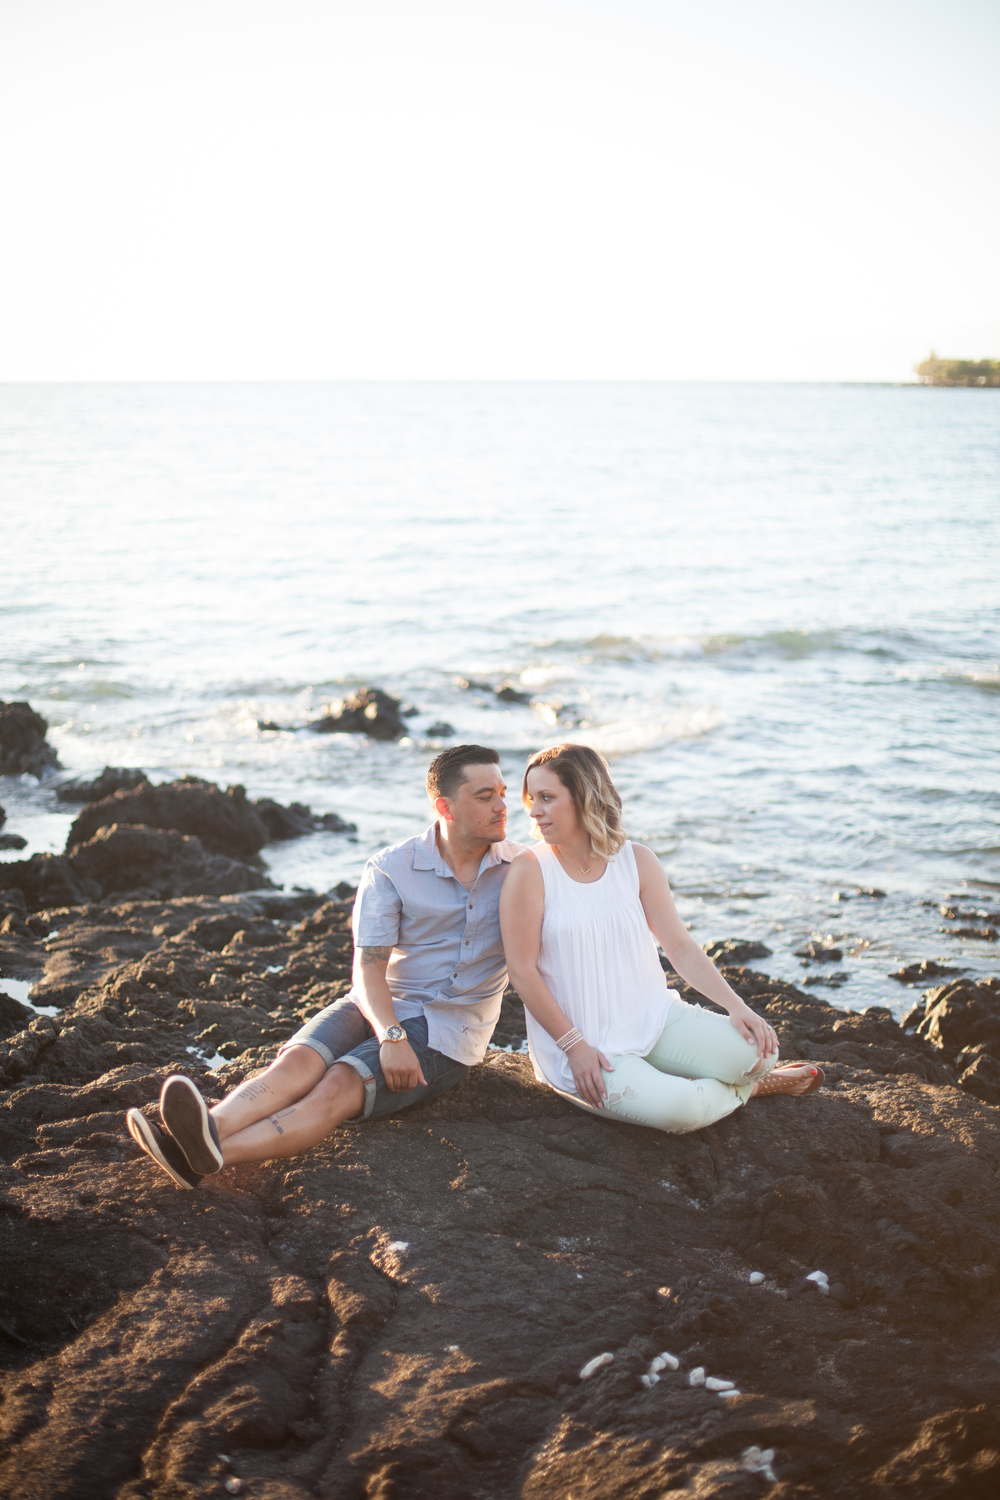 big island hawaii engagement photography 20150529182908-1.jpg